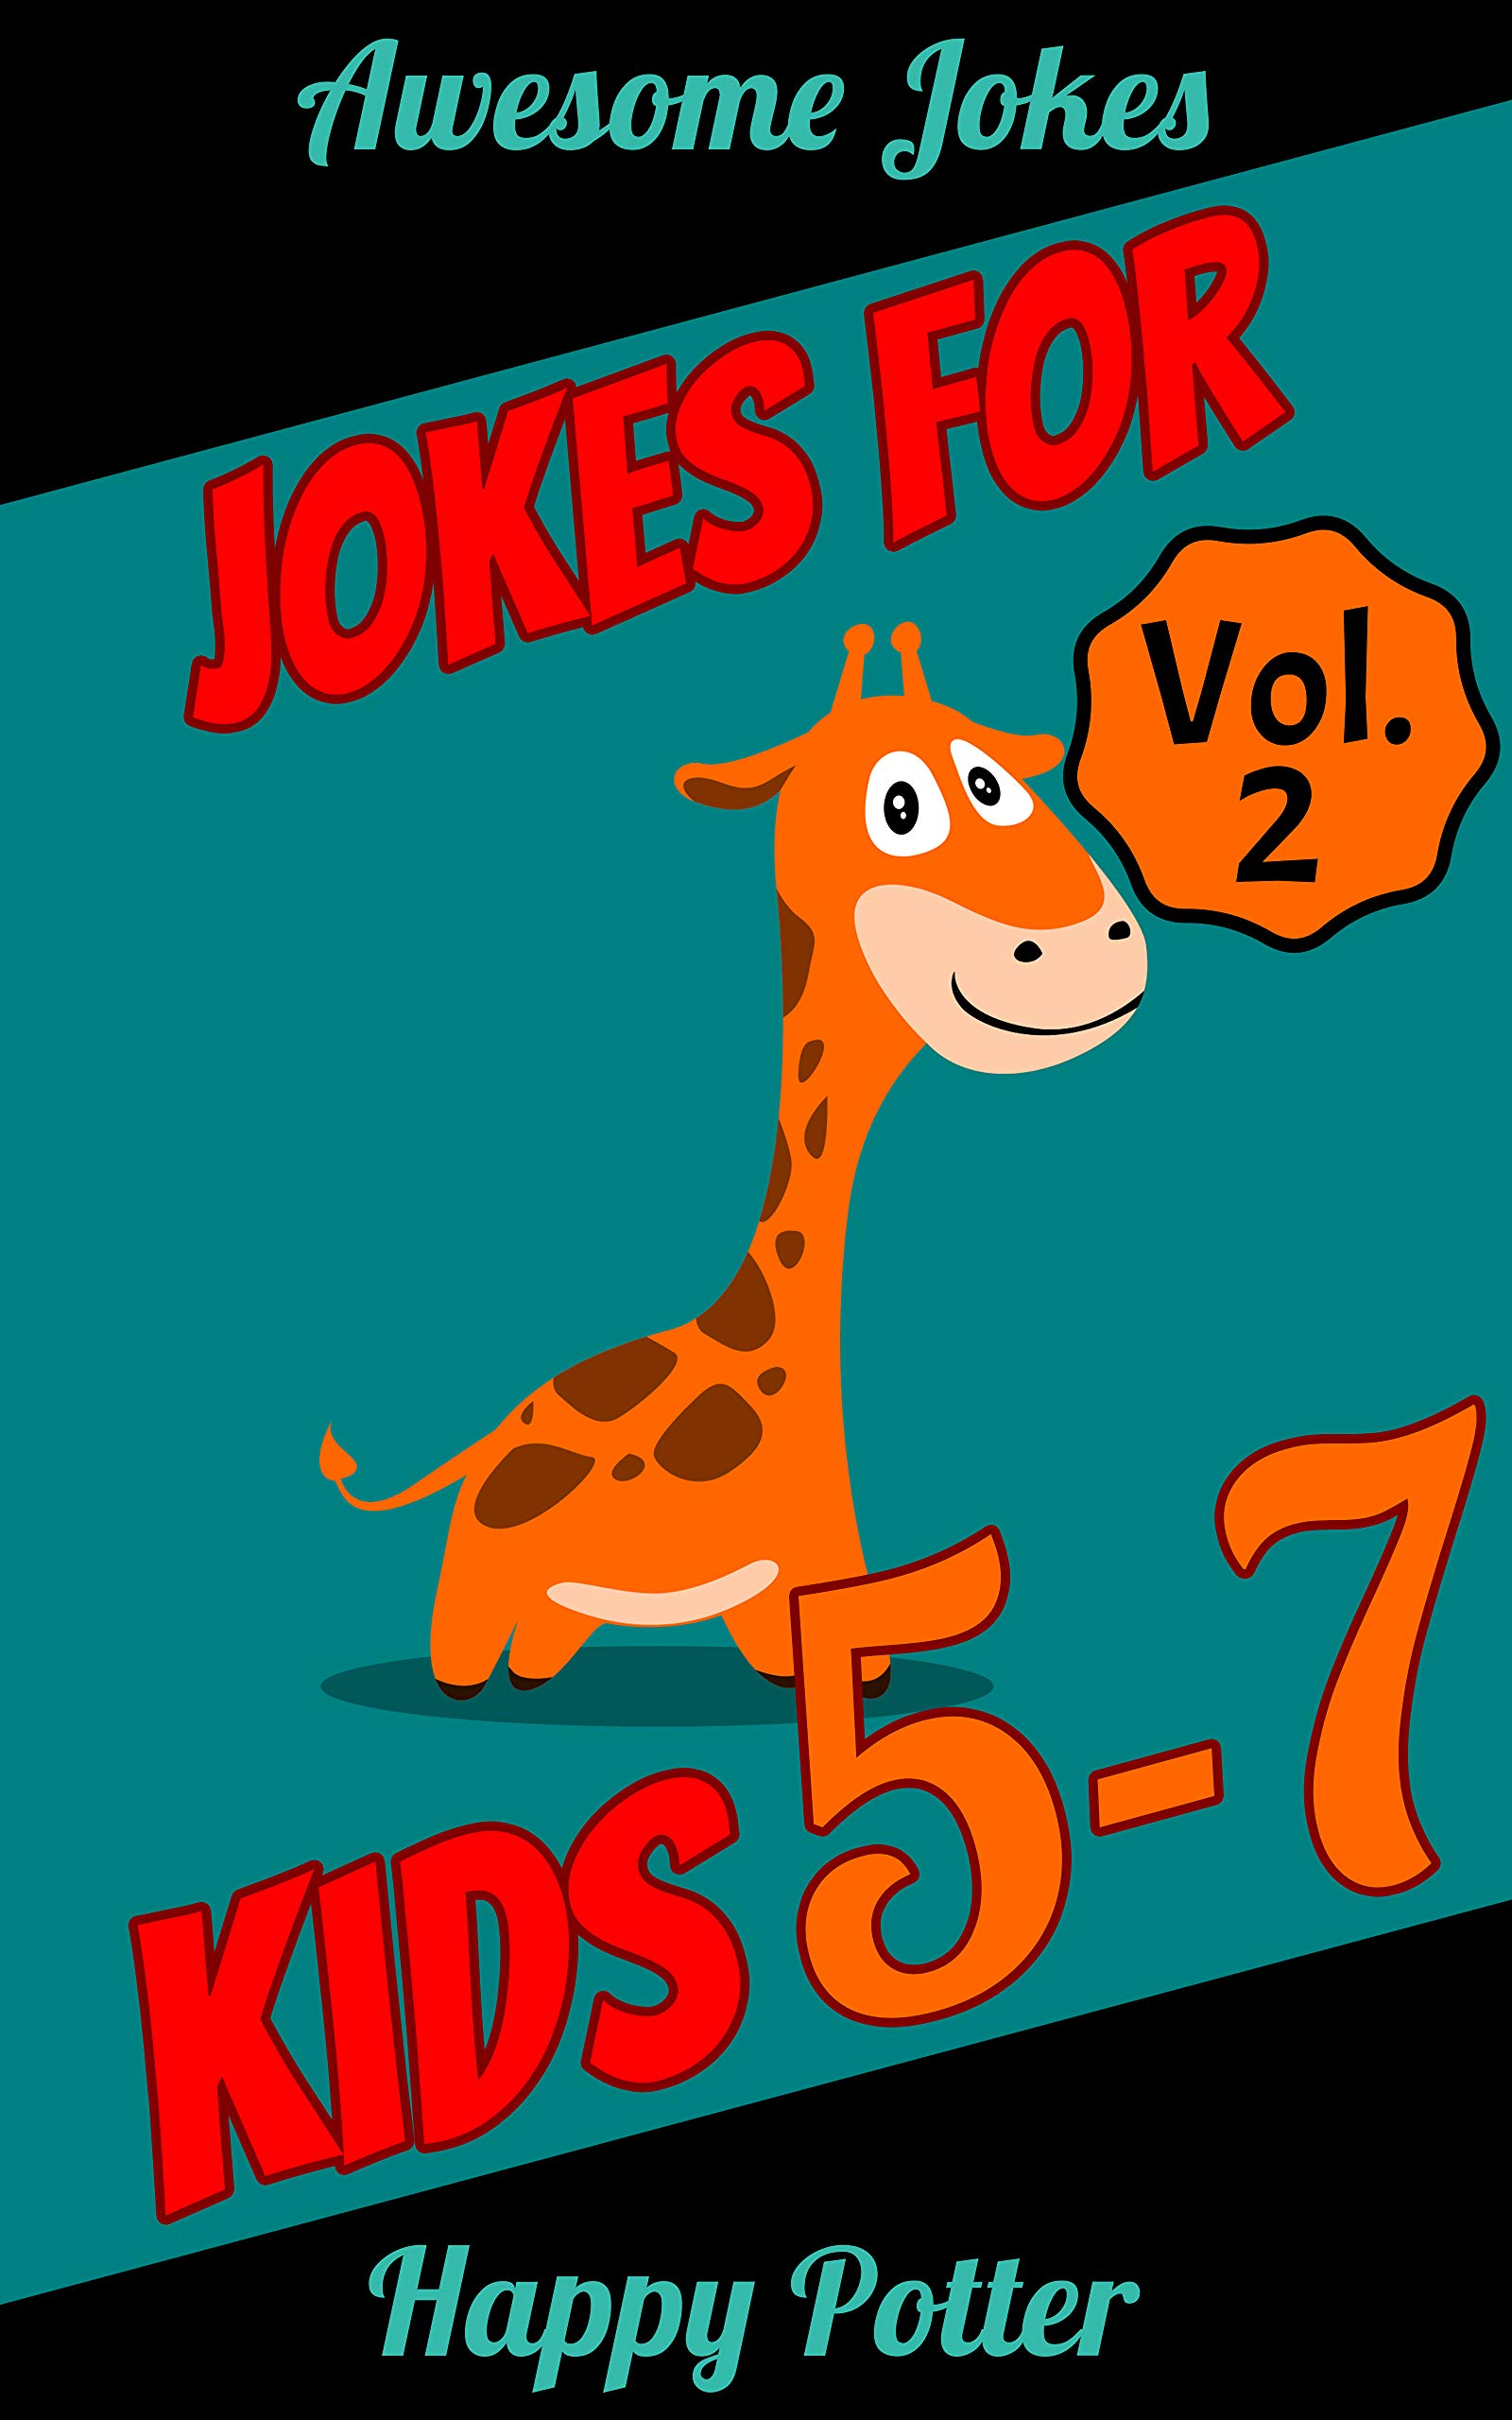 Jokes for Kids 5-7: 300 Jokes for Kids Riddle book for smart kids ages 5-7. (English Edition)